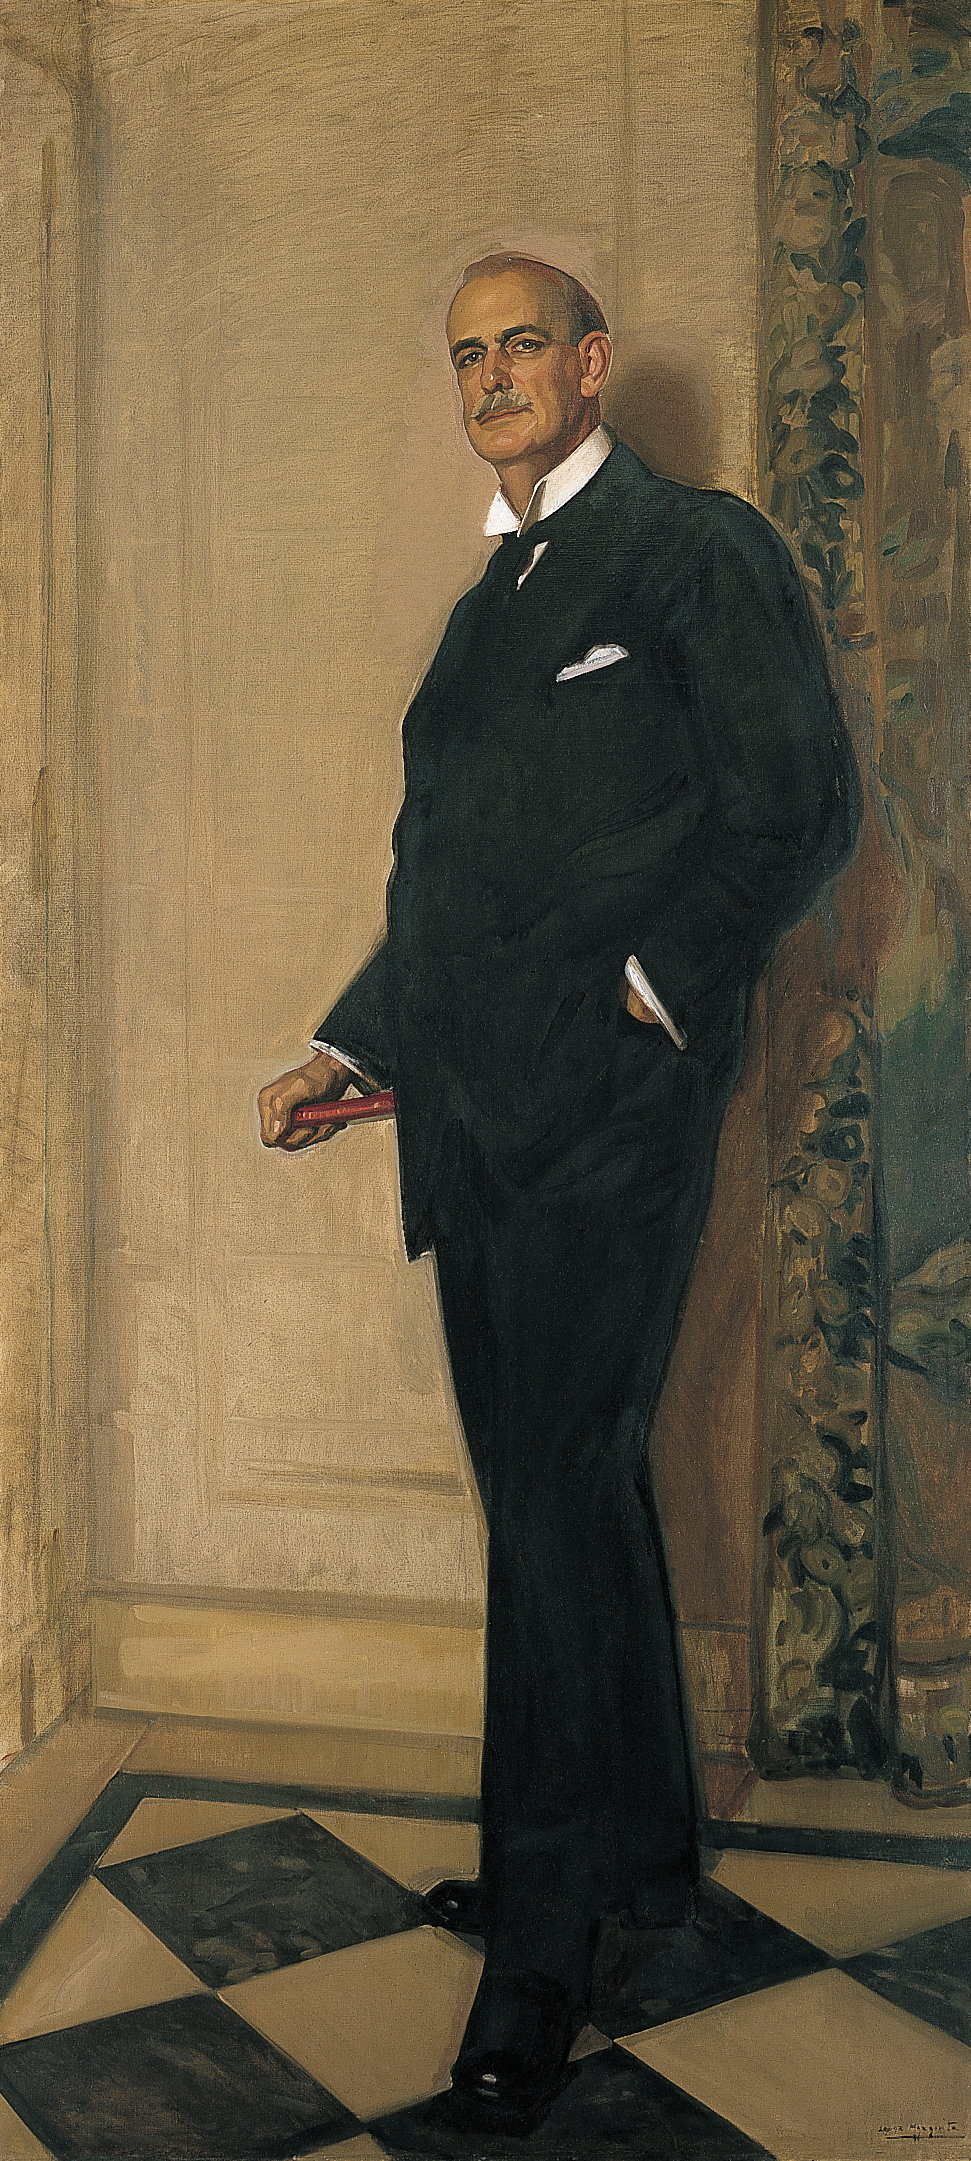 José María López Mezquita. Archer Milton Huntington, 1926. New York, The Hispanic Society of America